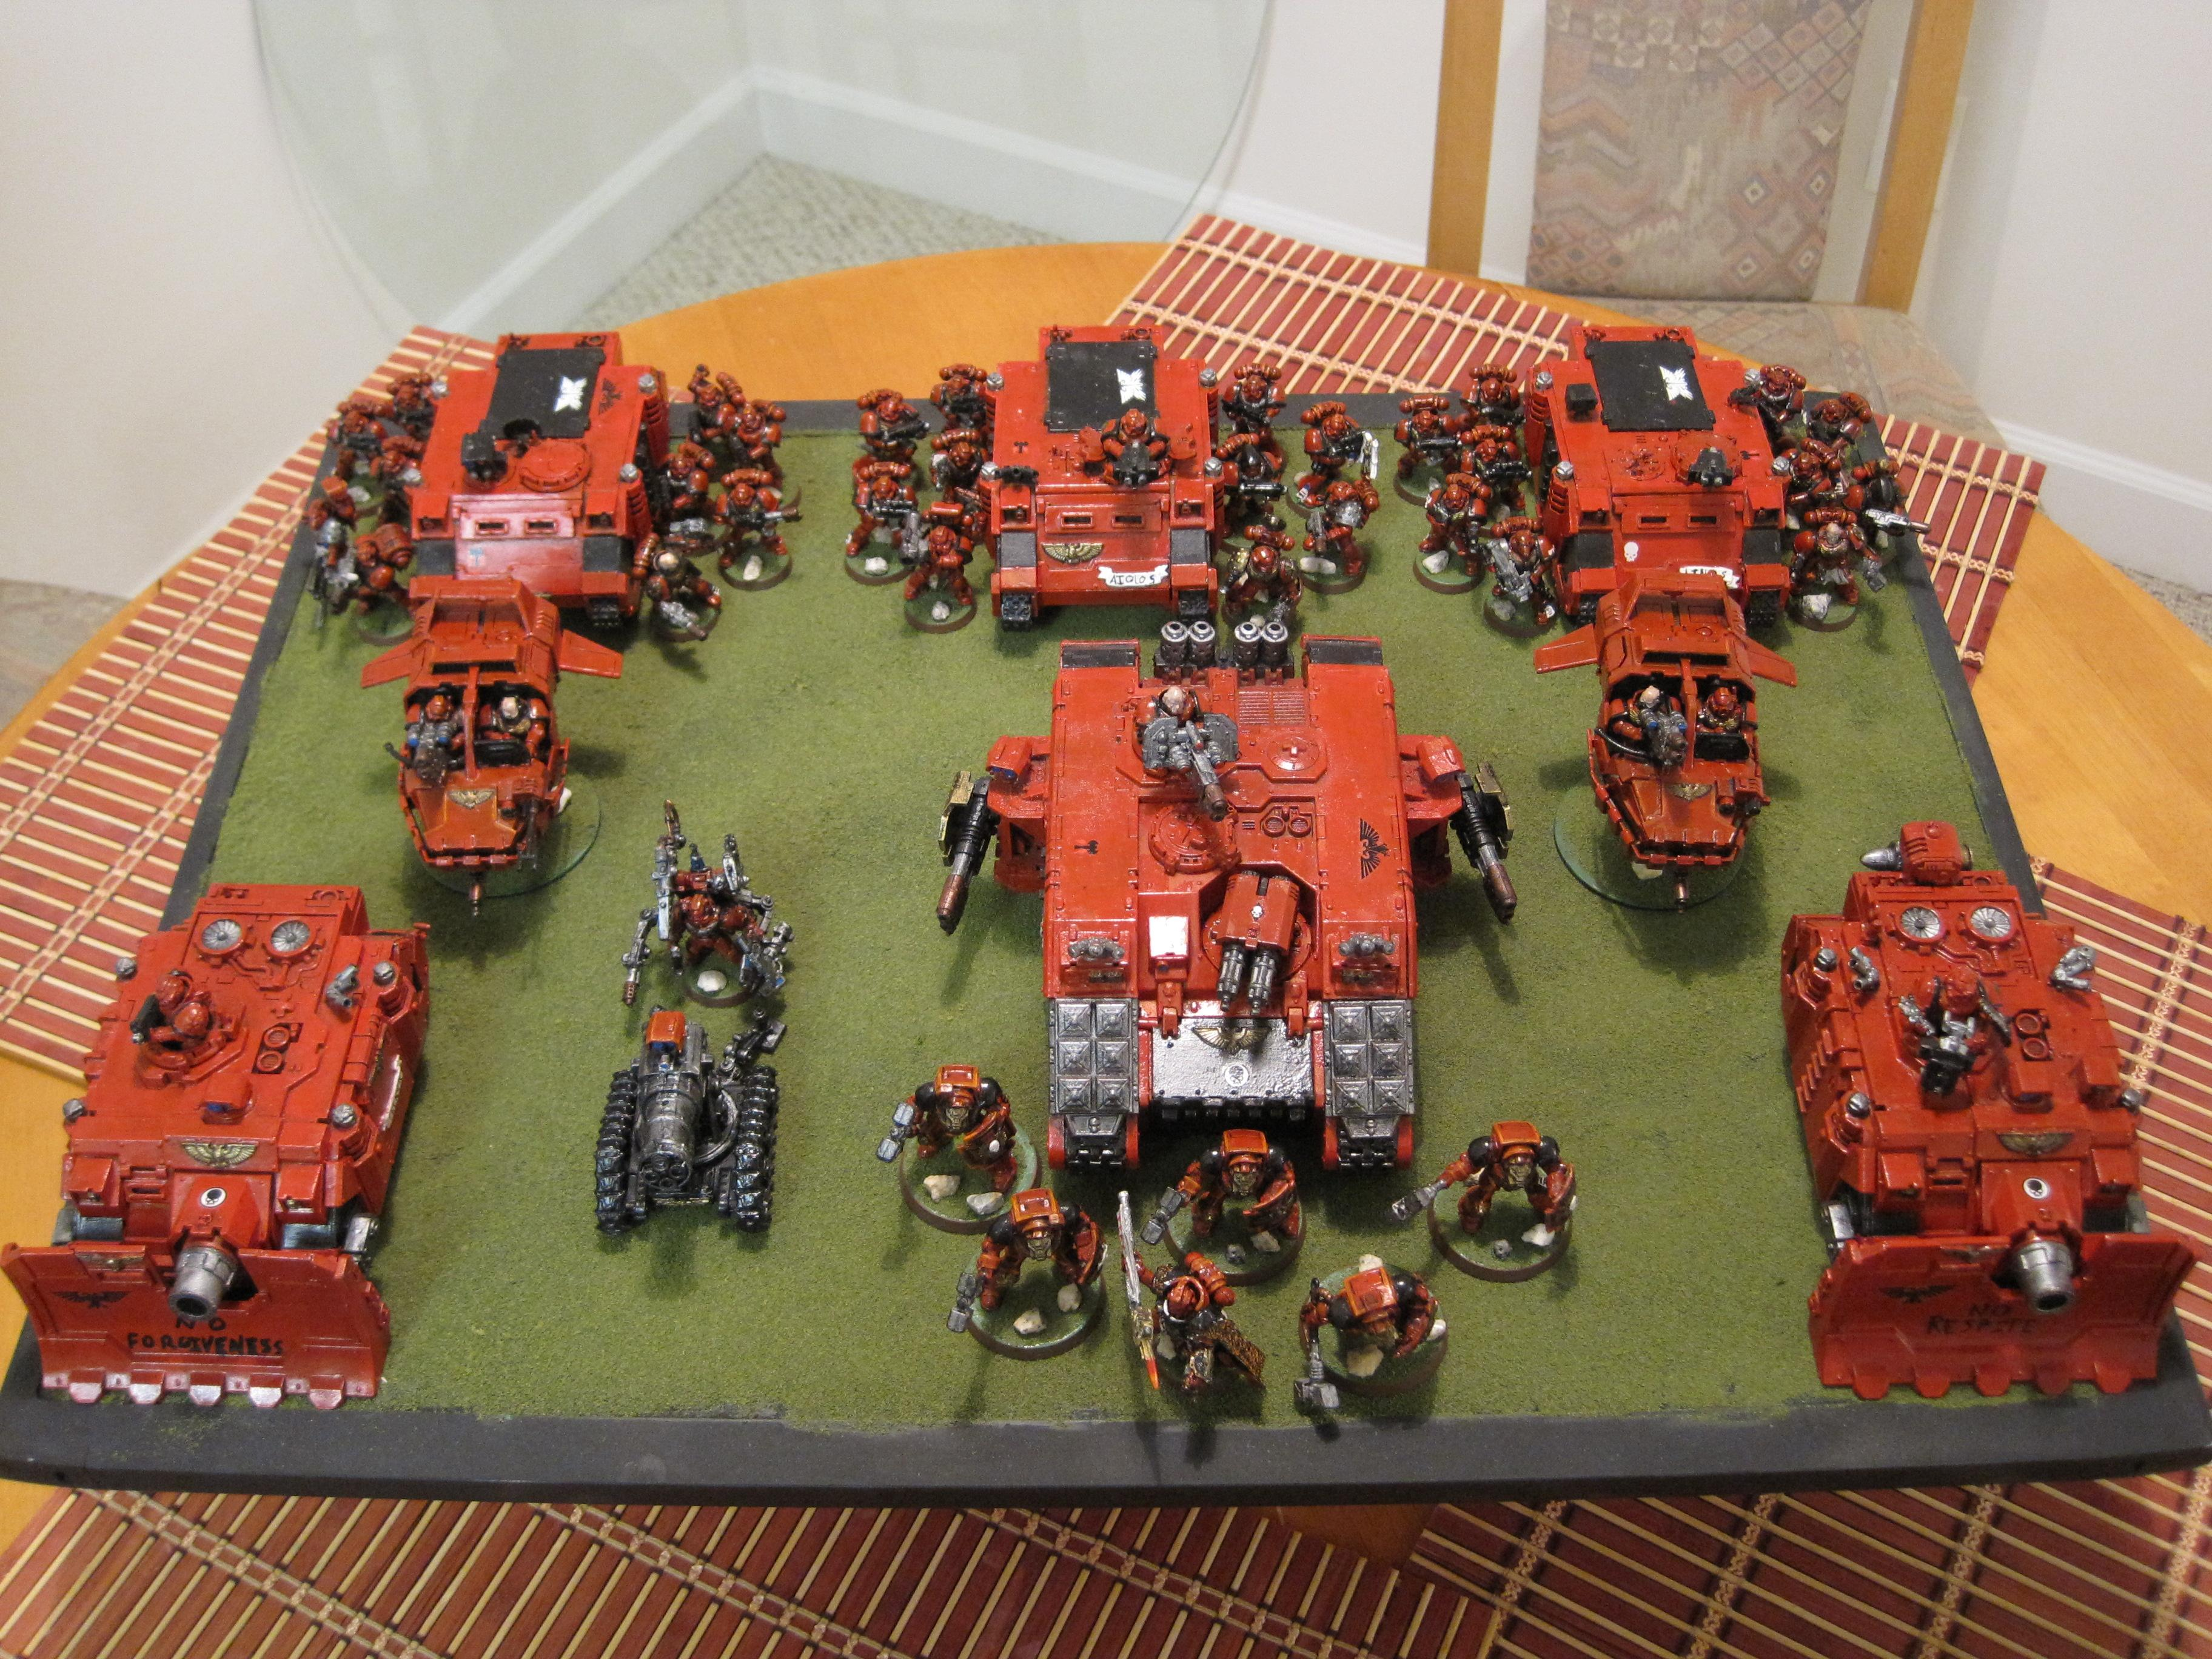 Army, Home Brew, Land Speeder, My Old Army, Self Made Chapter, Space Marines, Warhammer 40,000